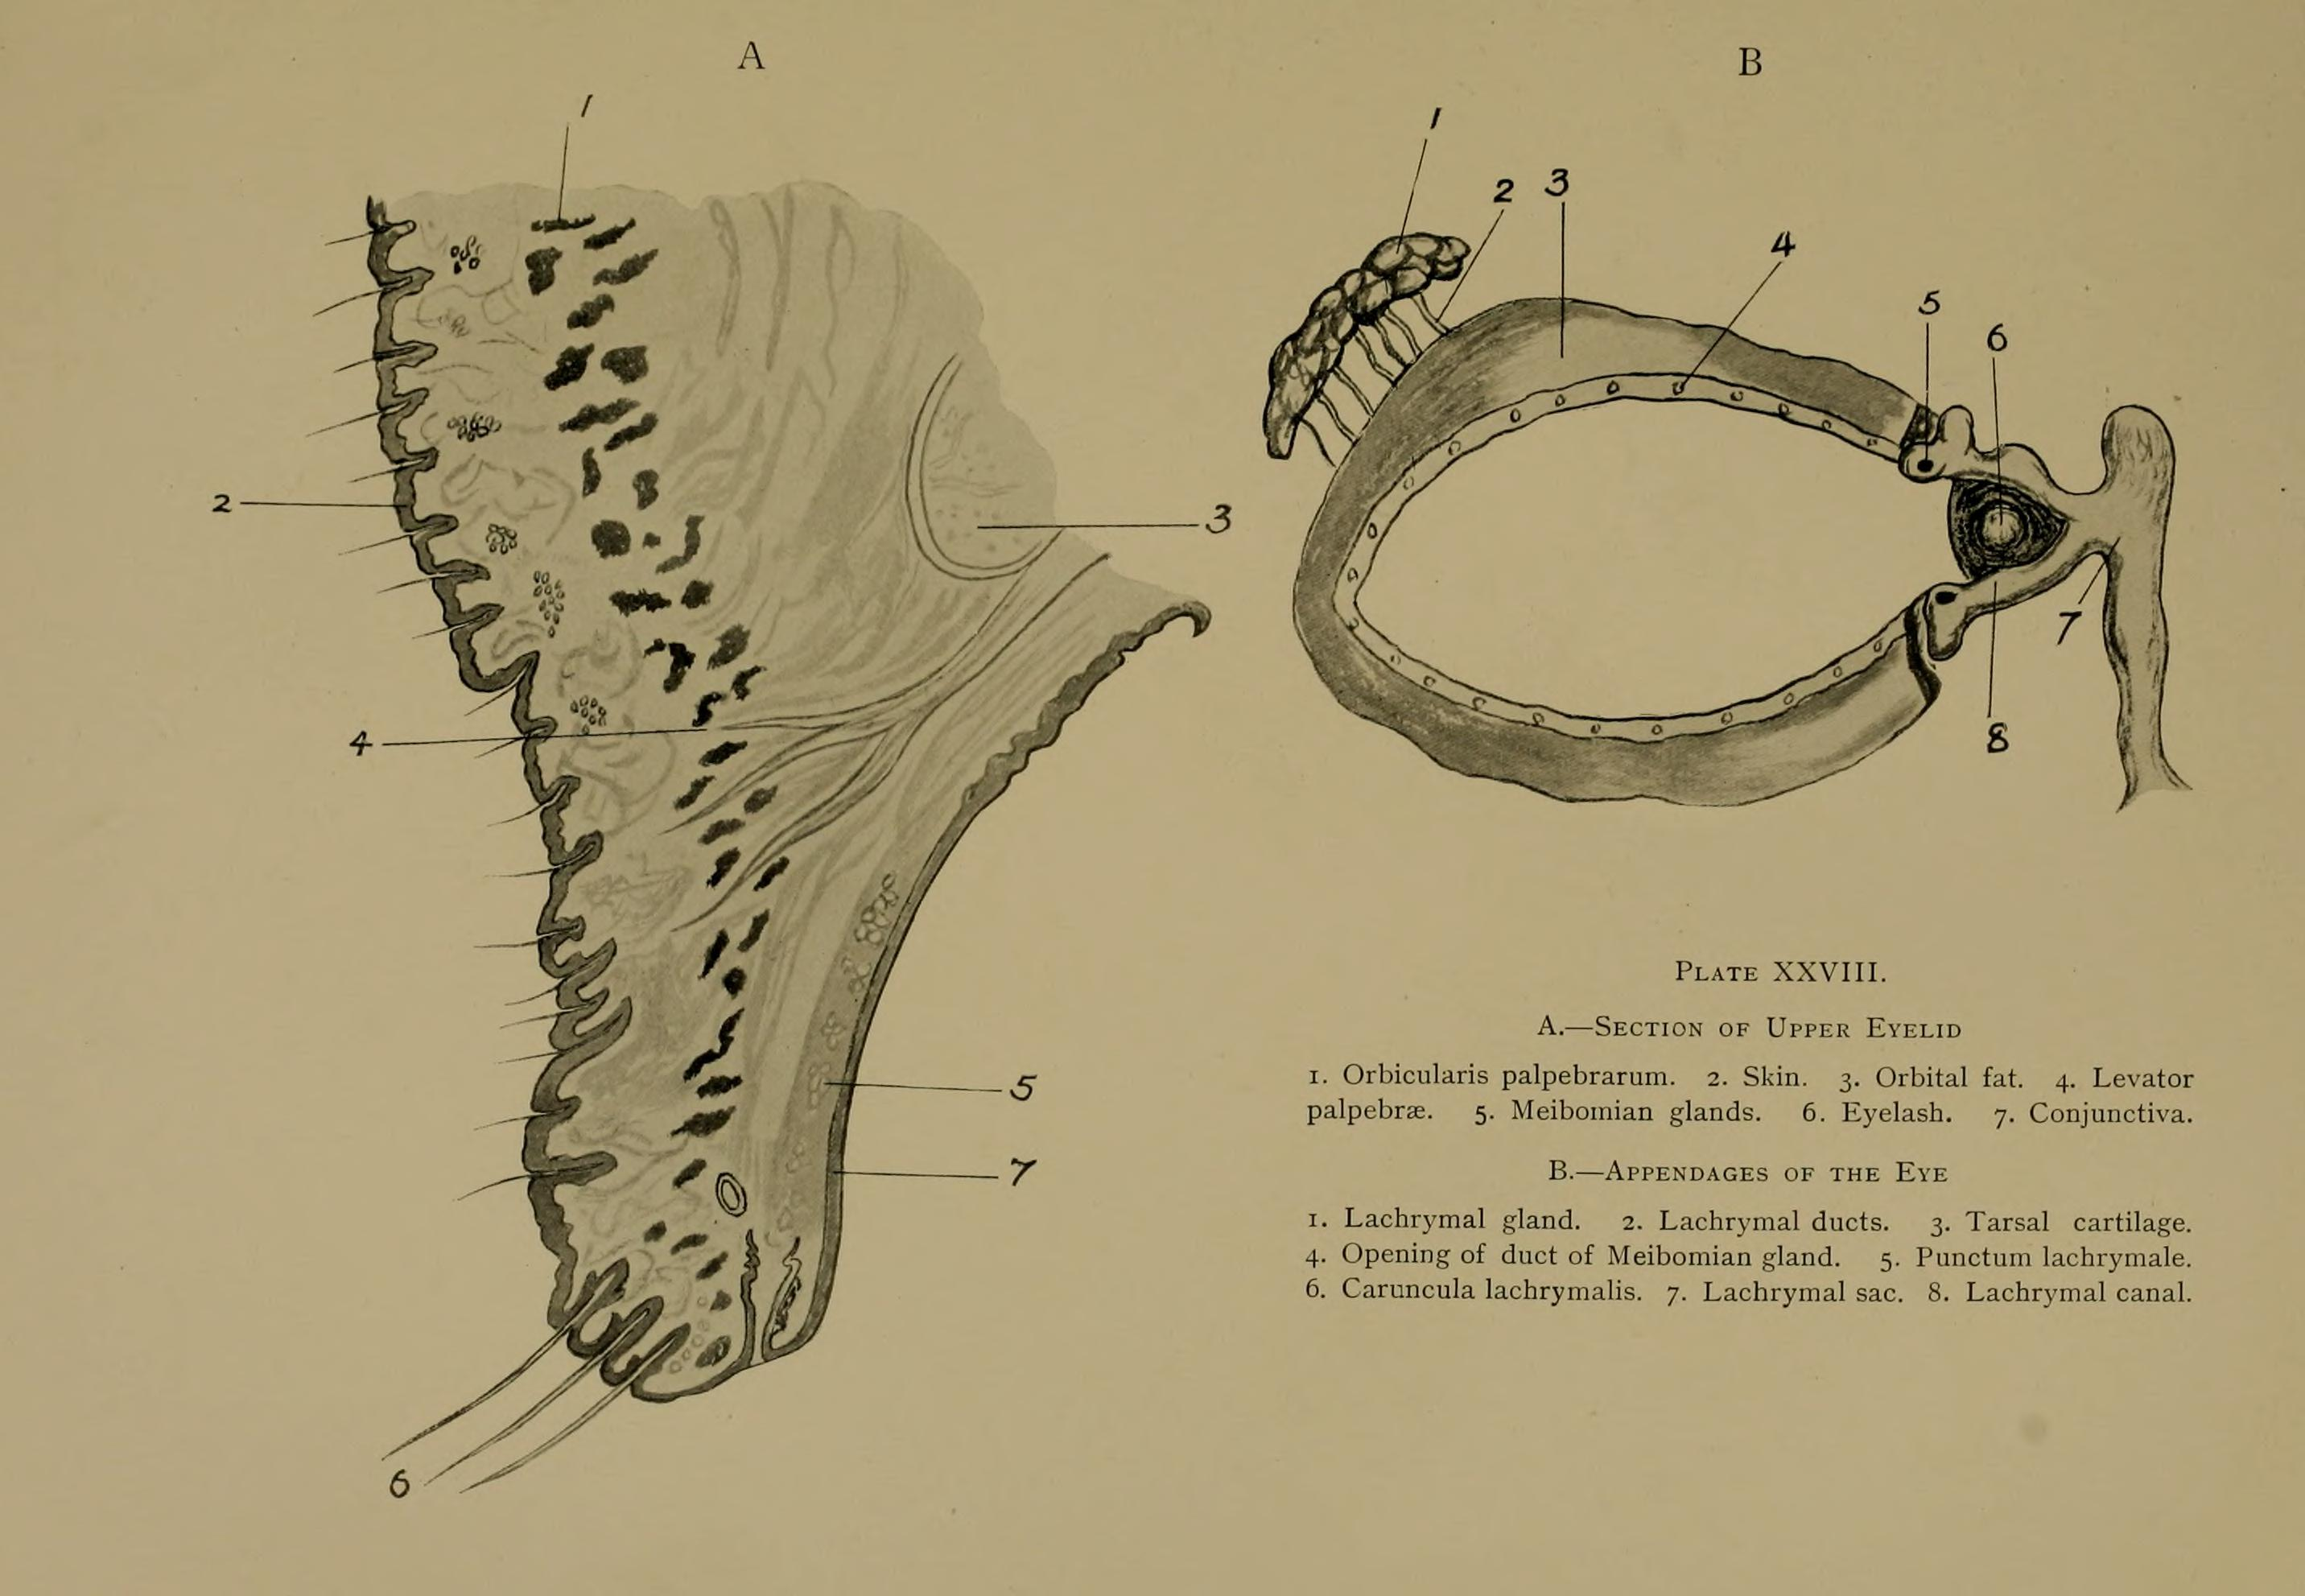 File:The surgical anatomy of the horse BHL19944938.jpg - Wikimedia ...